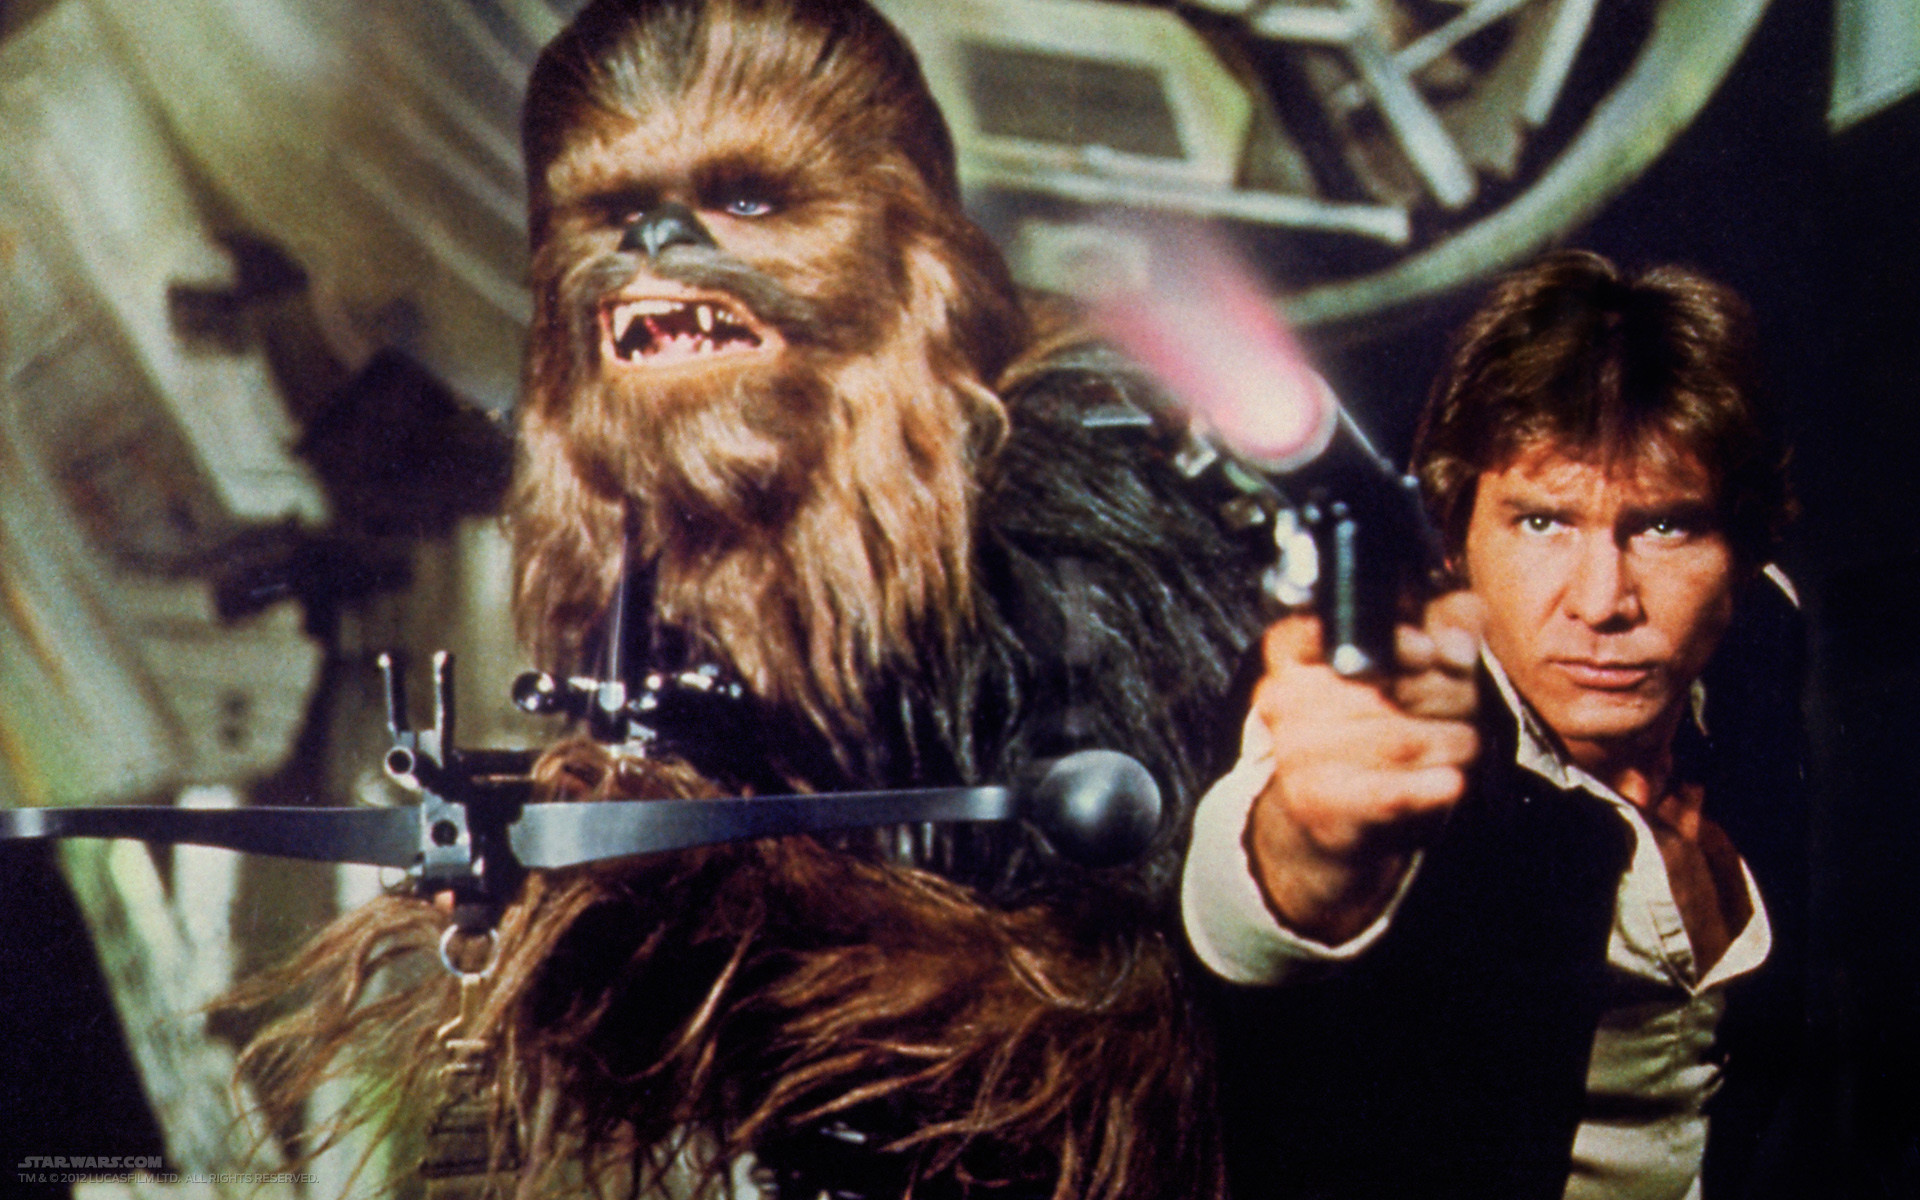 Han Solo Chewbacca And The Millennium Falcon Return Captain Solo Star Wars 1920x1200 Wallpaper Teahub Io